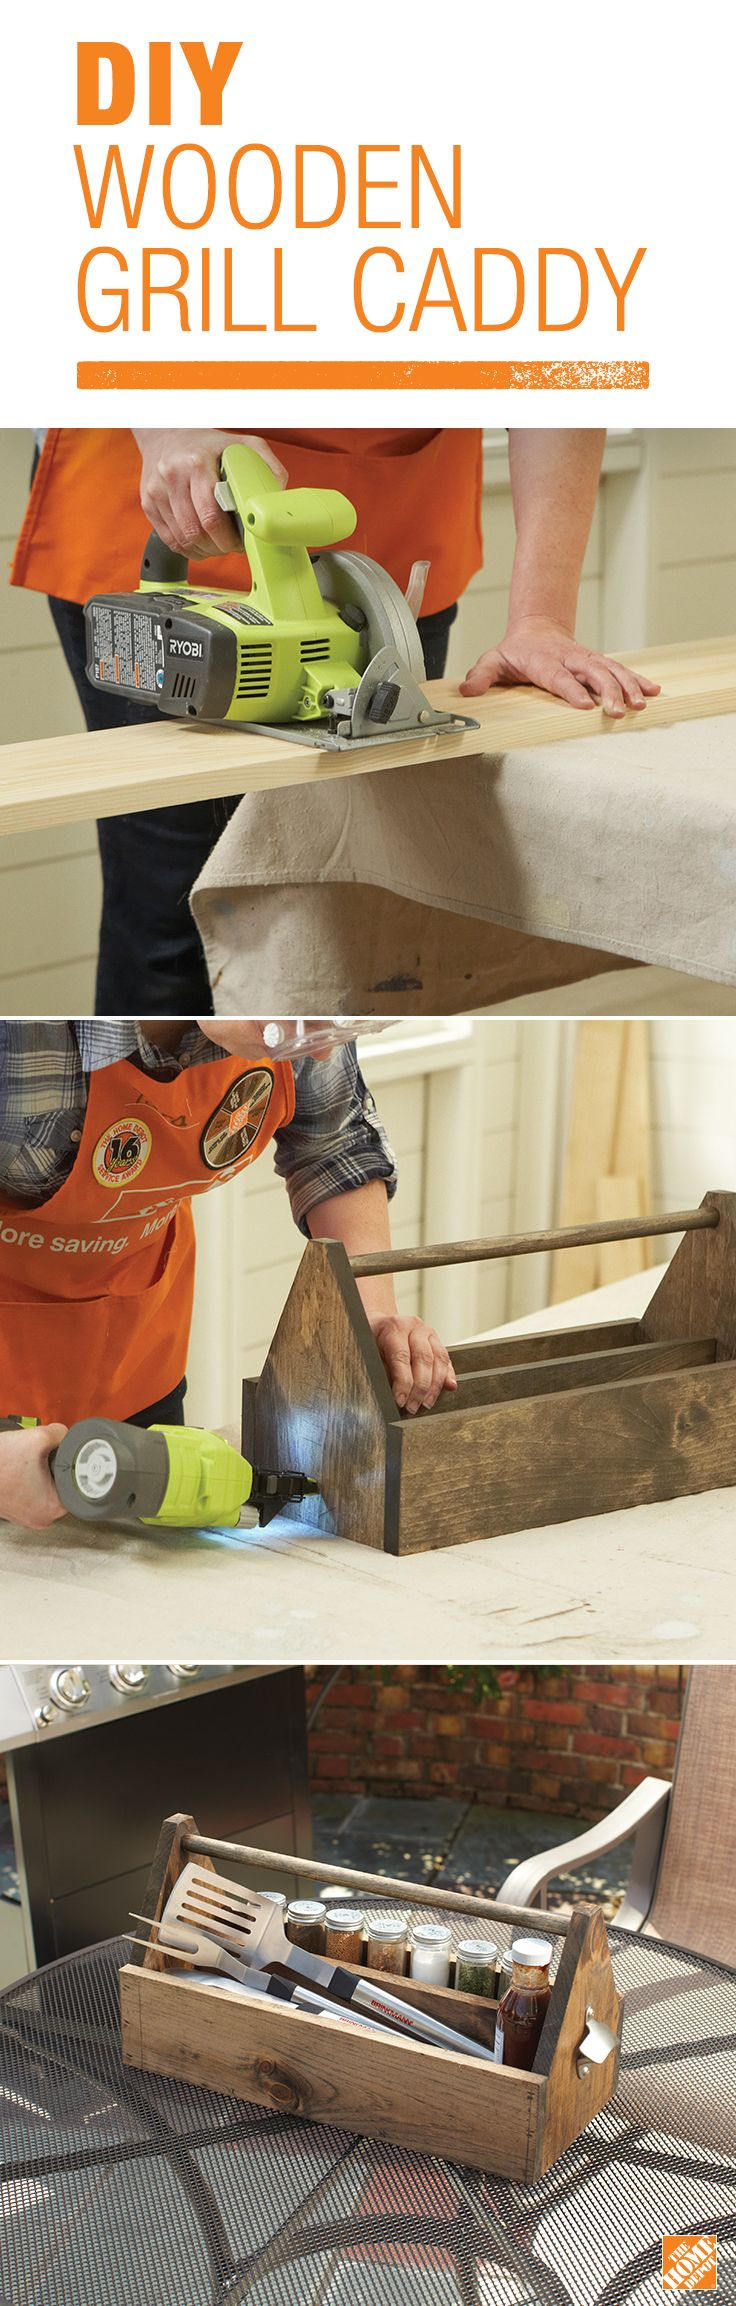 Learn how to build a DIY wooden grill caddy for all of your grilling tools and seasonings with some simple know-how and a few tools. For this project, you'll need a circular saw, brad nailer, and paint or wood stain for personalization. Click through for the steps to make your own carrier.